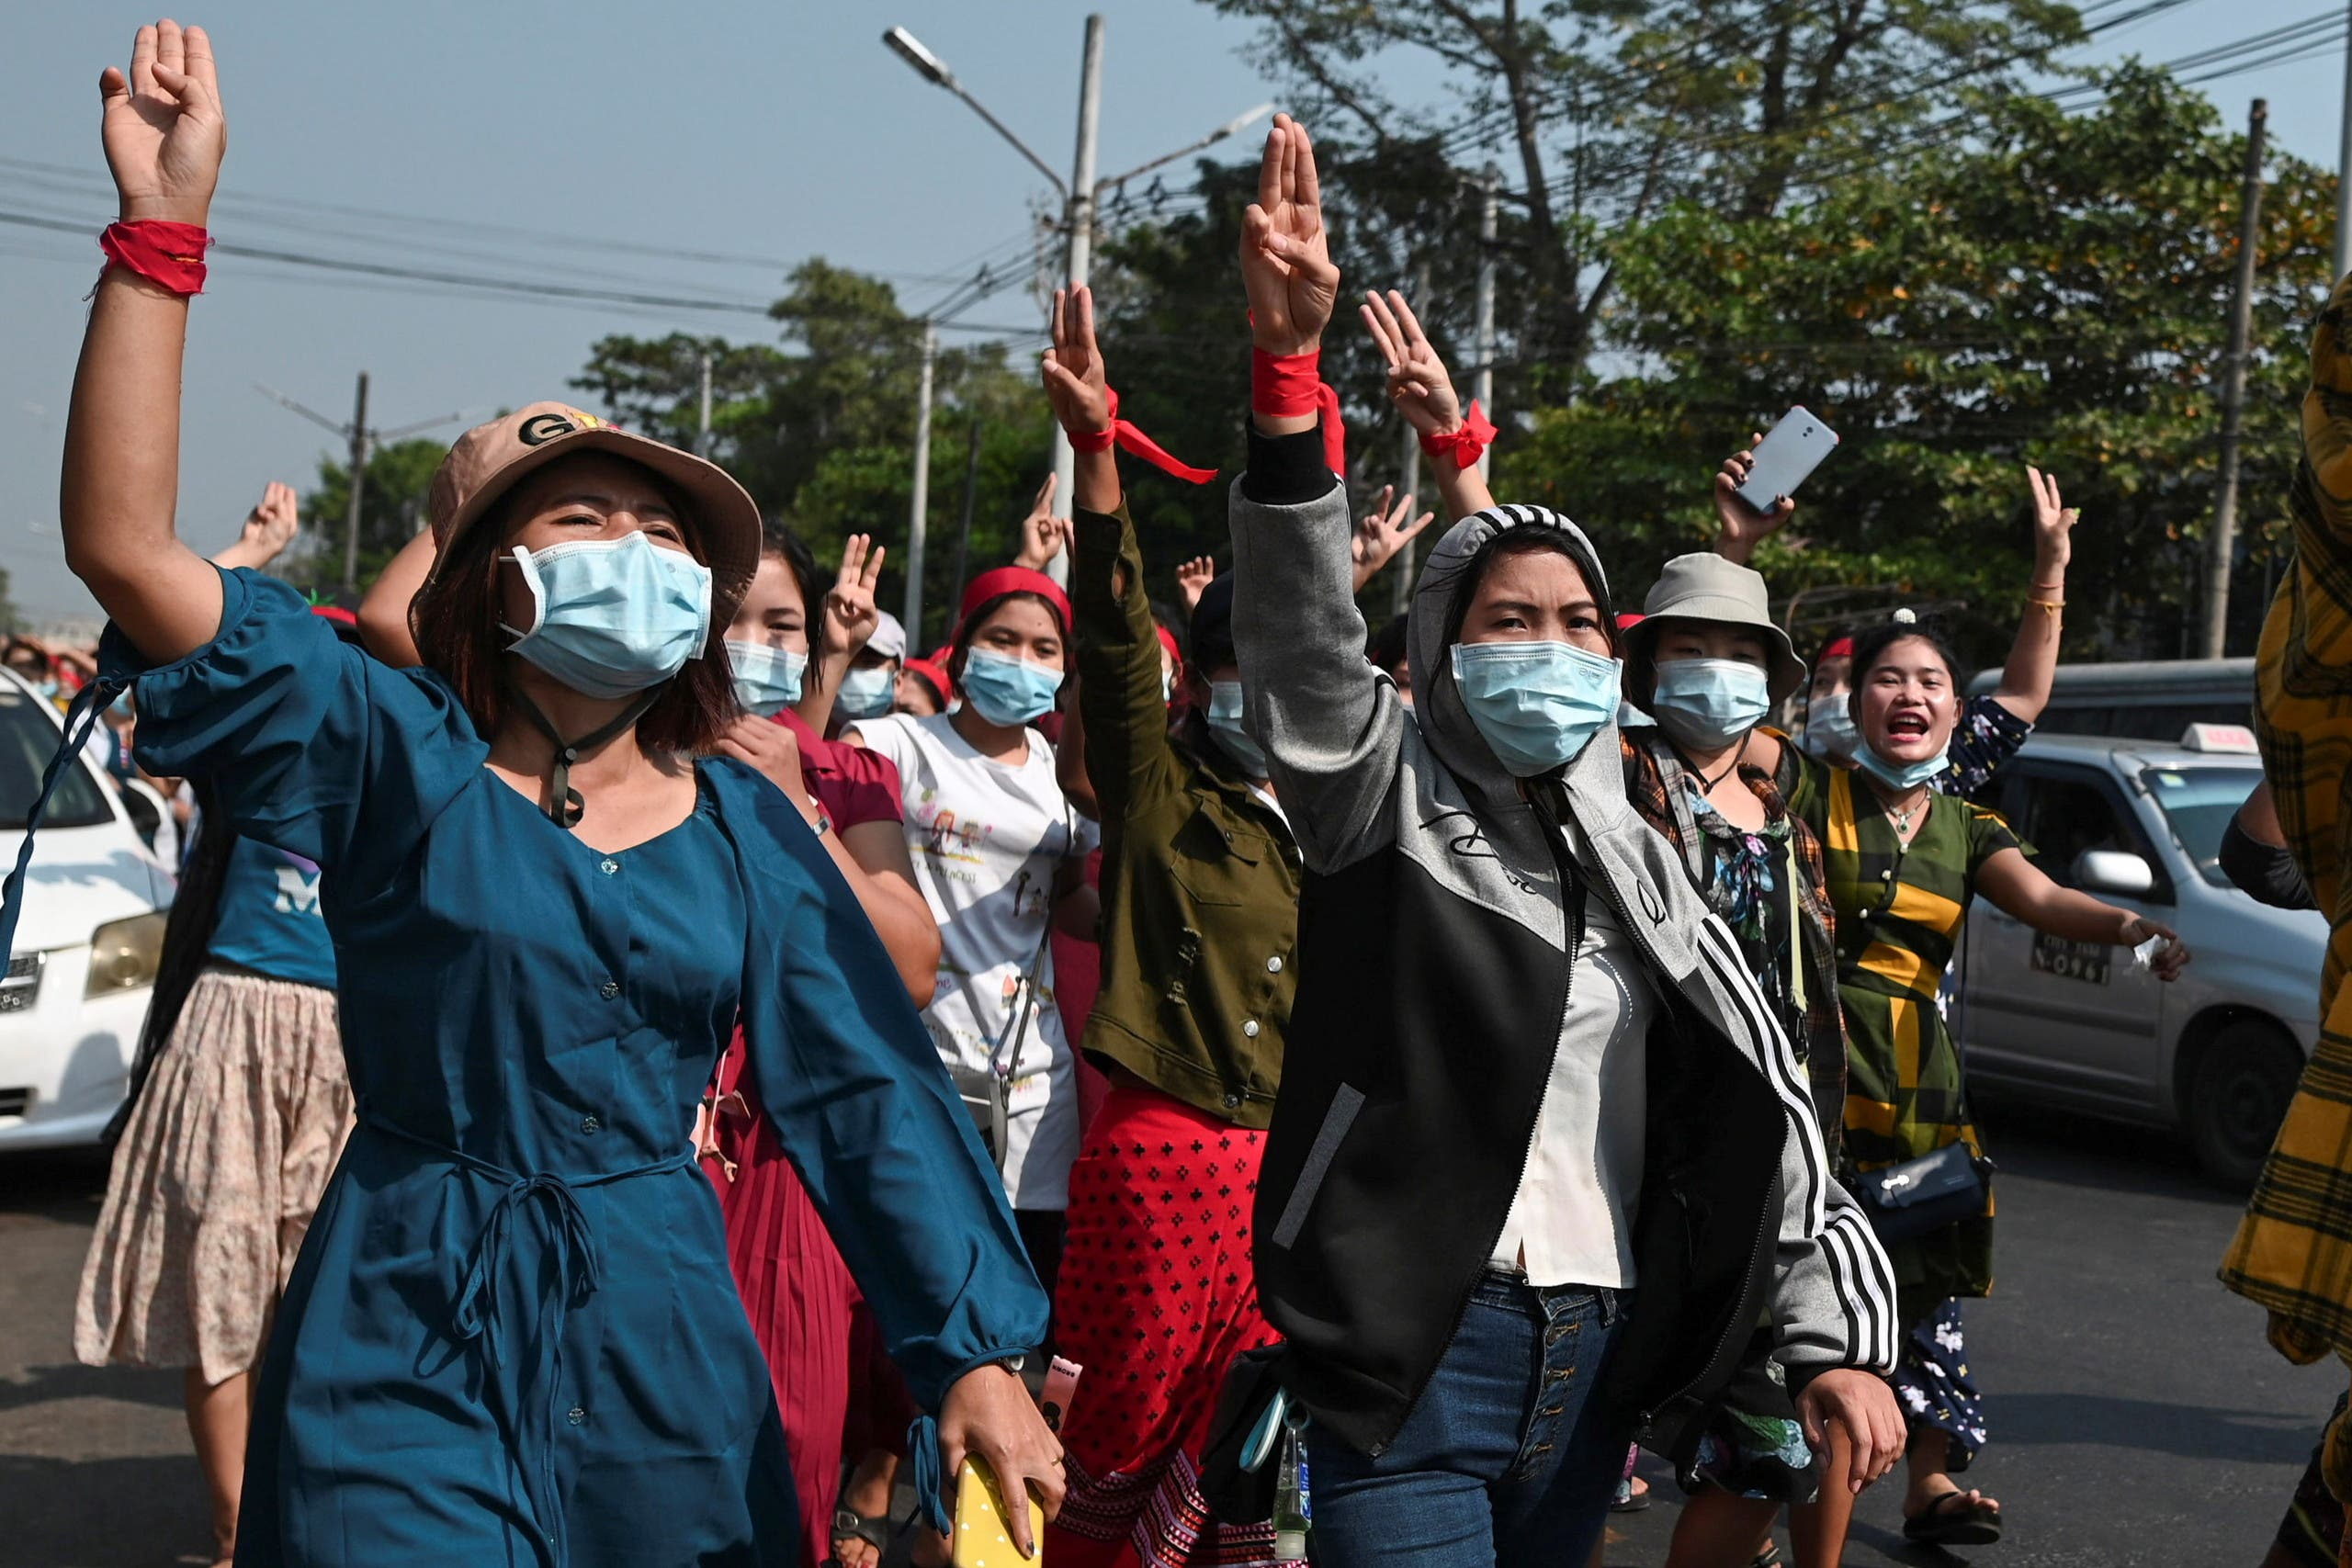 People protest in a street against the military coup in Myanmar